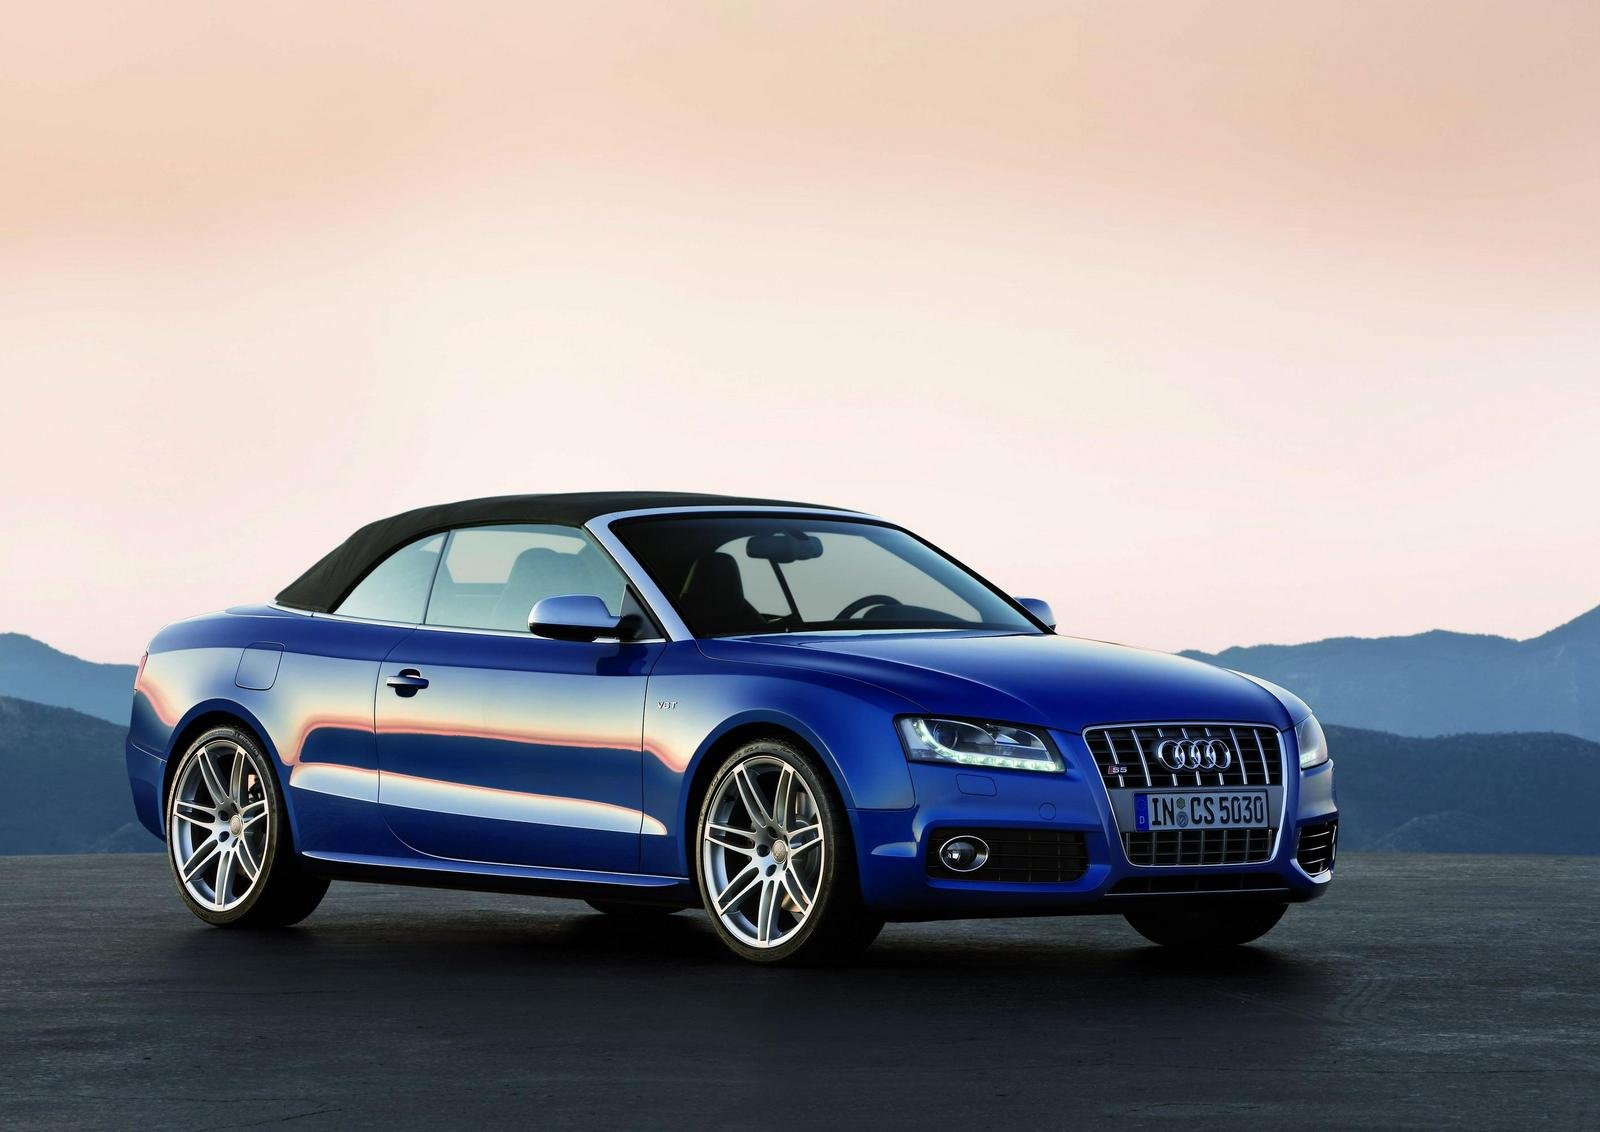 2009 audi a5 s5 convertible picture 287407 car review. Black Bedroom Furniture Sets. Home Design Ideas